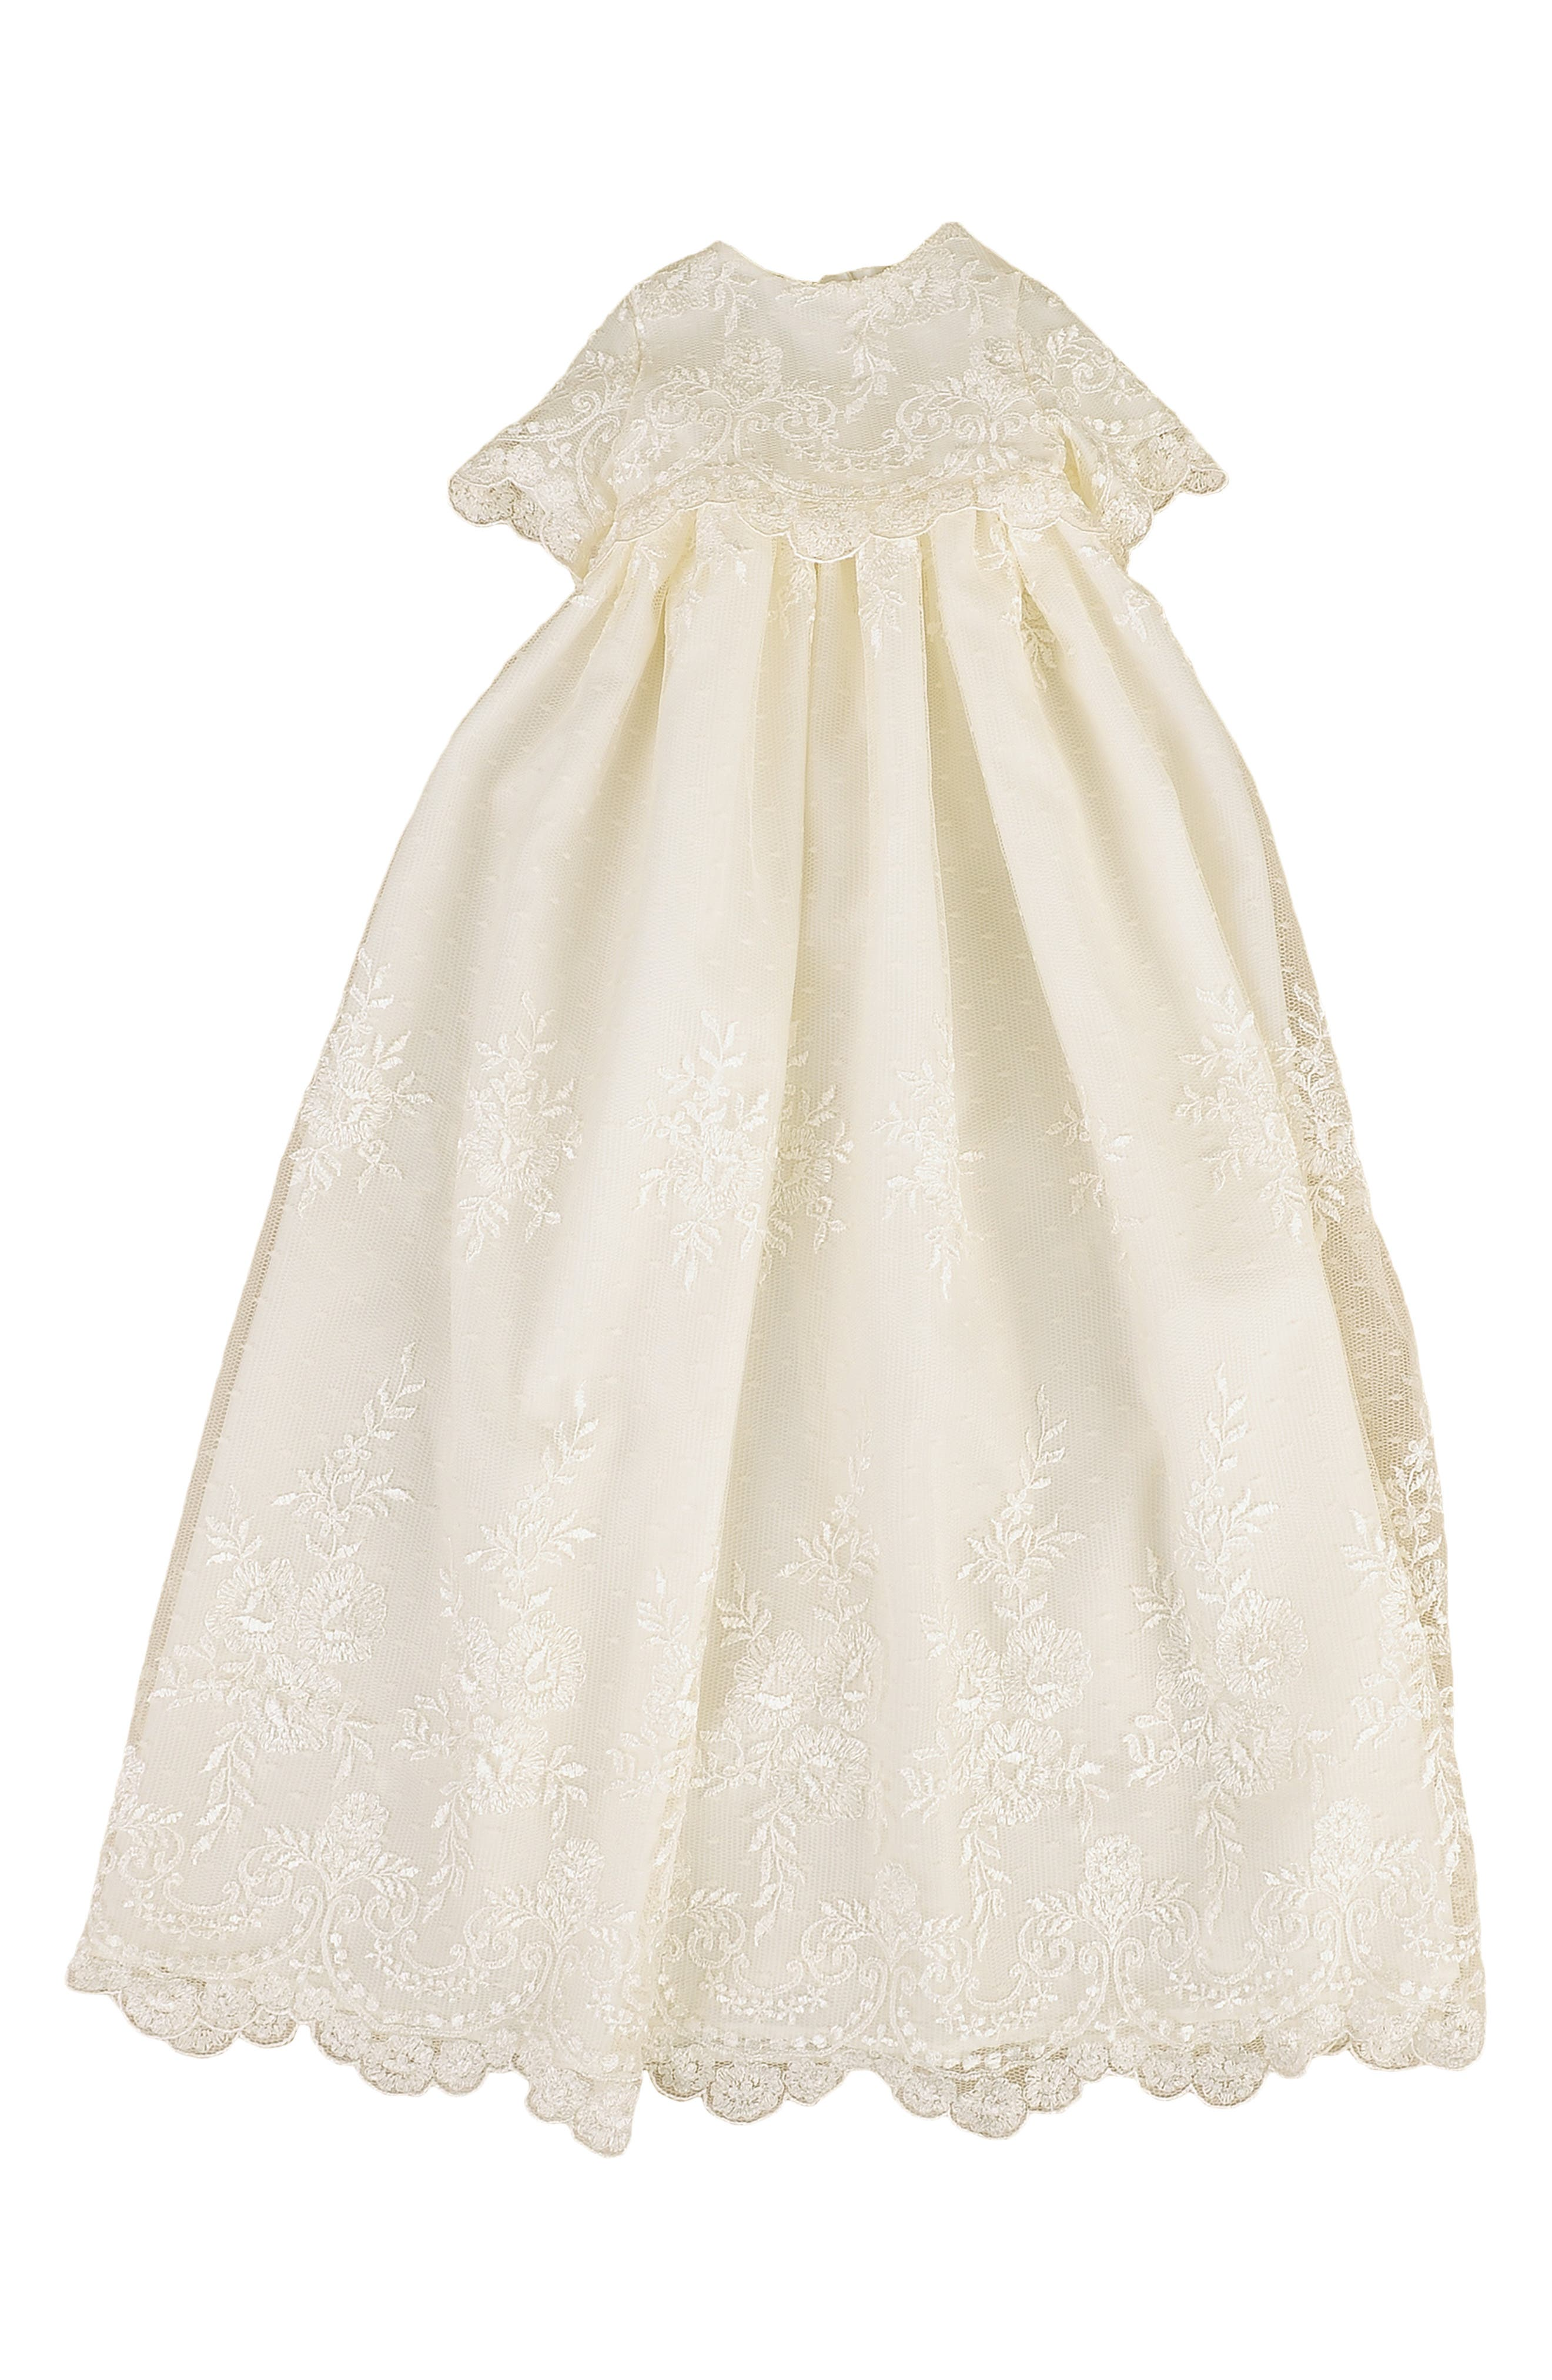 LITTLE THINGS MEAN A LOT, Christening Gown, Shawl, Slip & Bonnet Set, Main thumbnail 1, color, IVORY